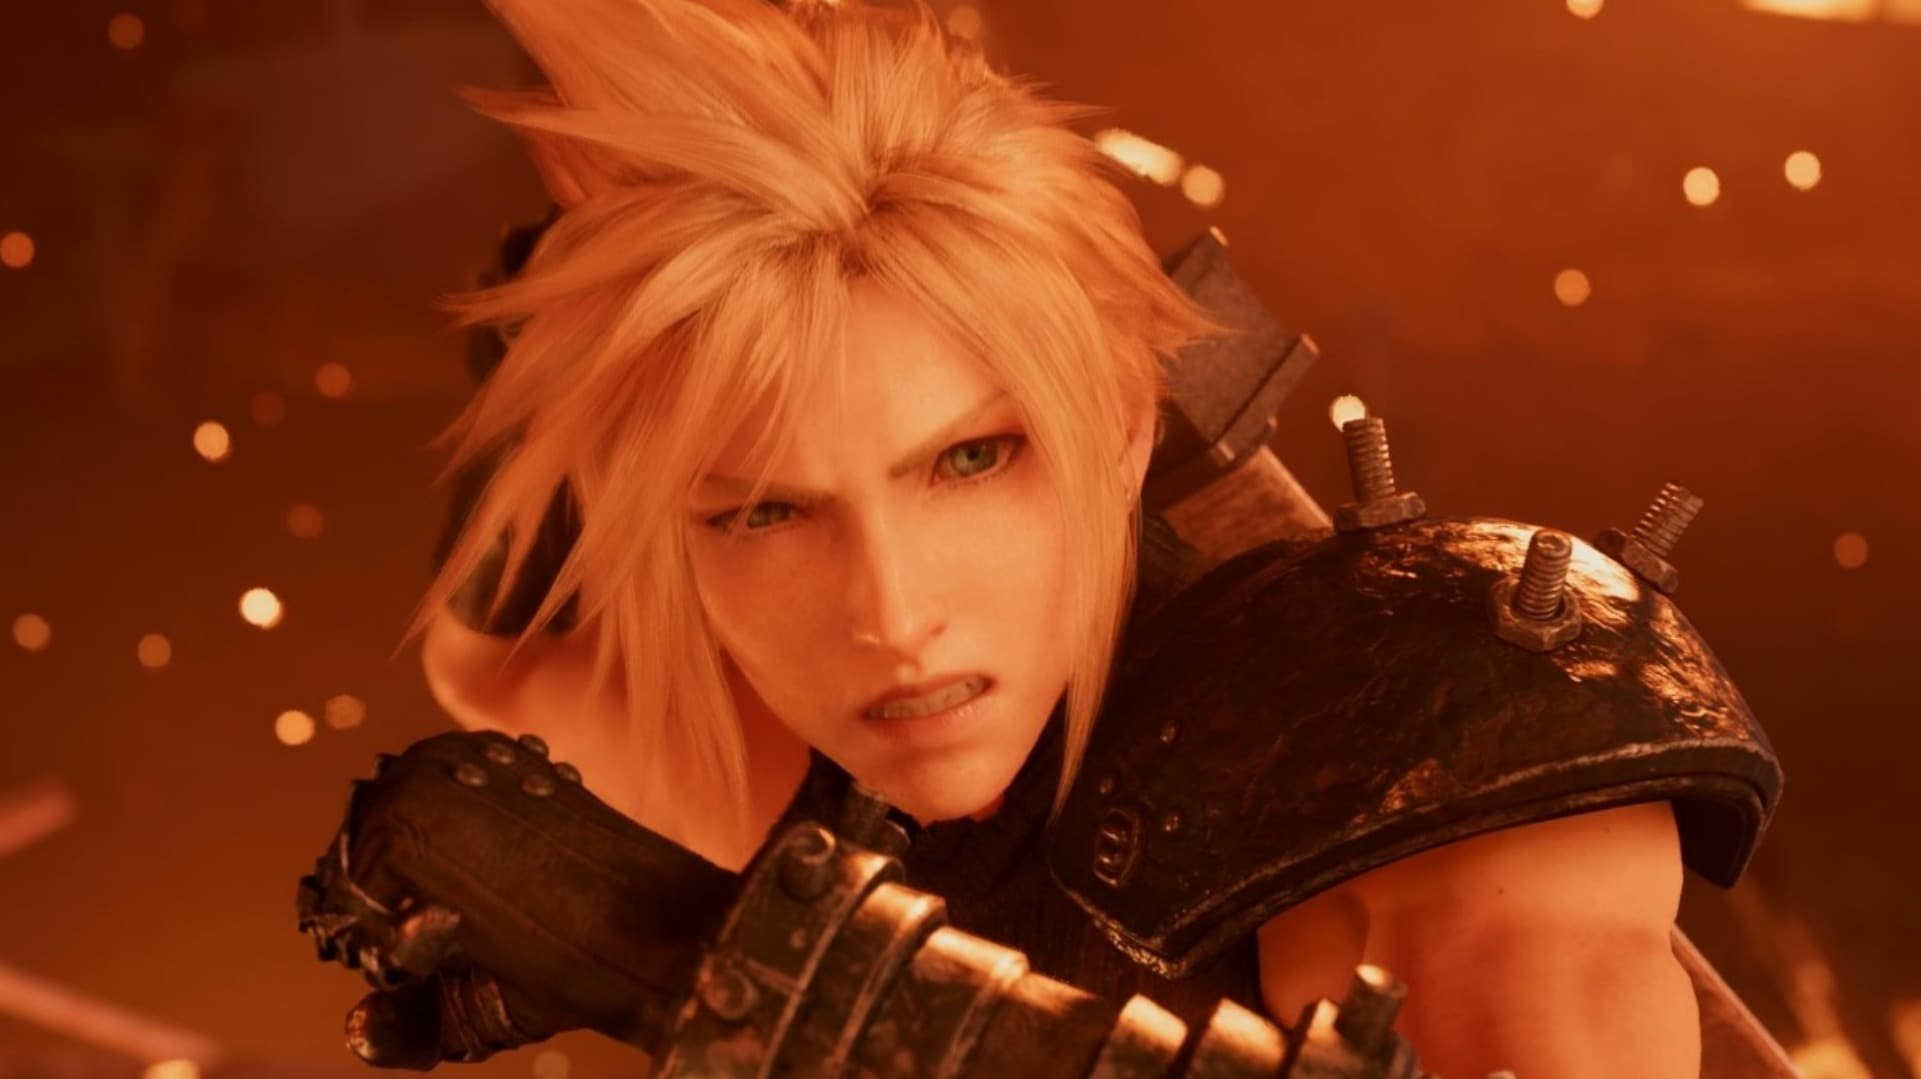 In new Final Fantasy 7 game, a blueprint for true remakes — and philosophical themes to mull on